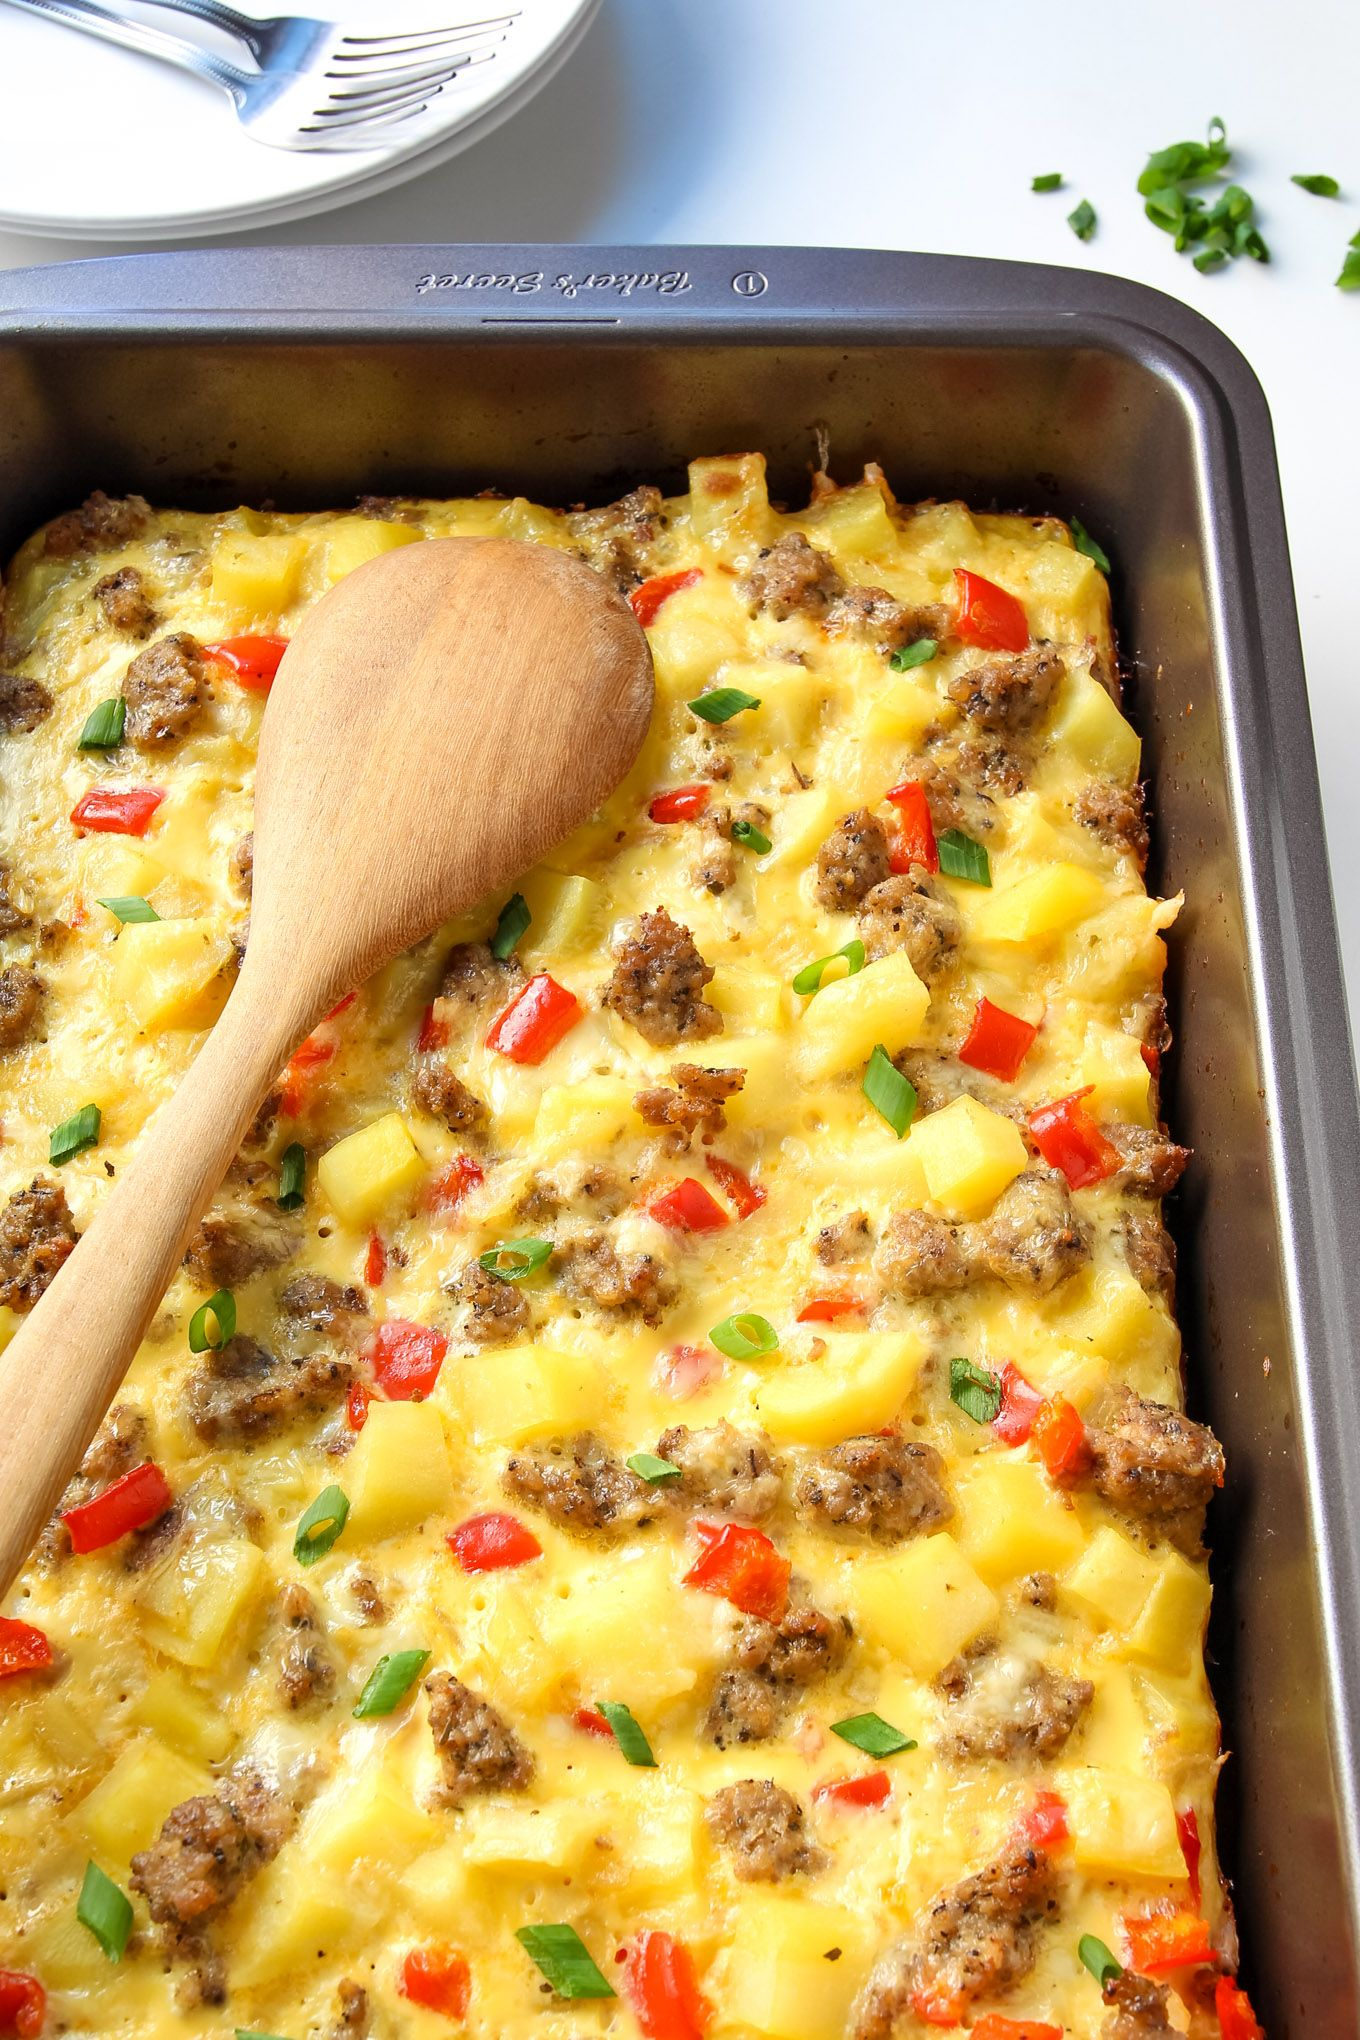 Egg bake recipes with potatoes